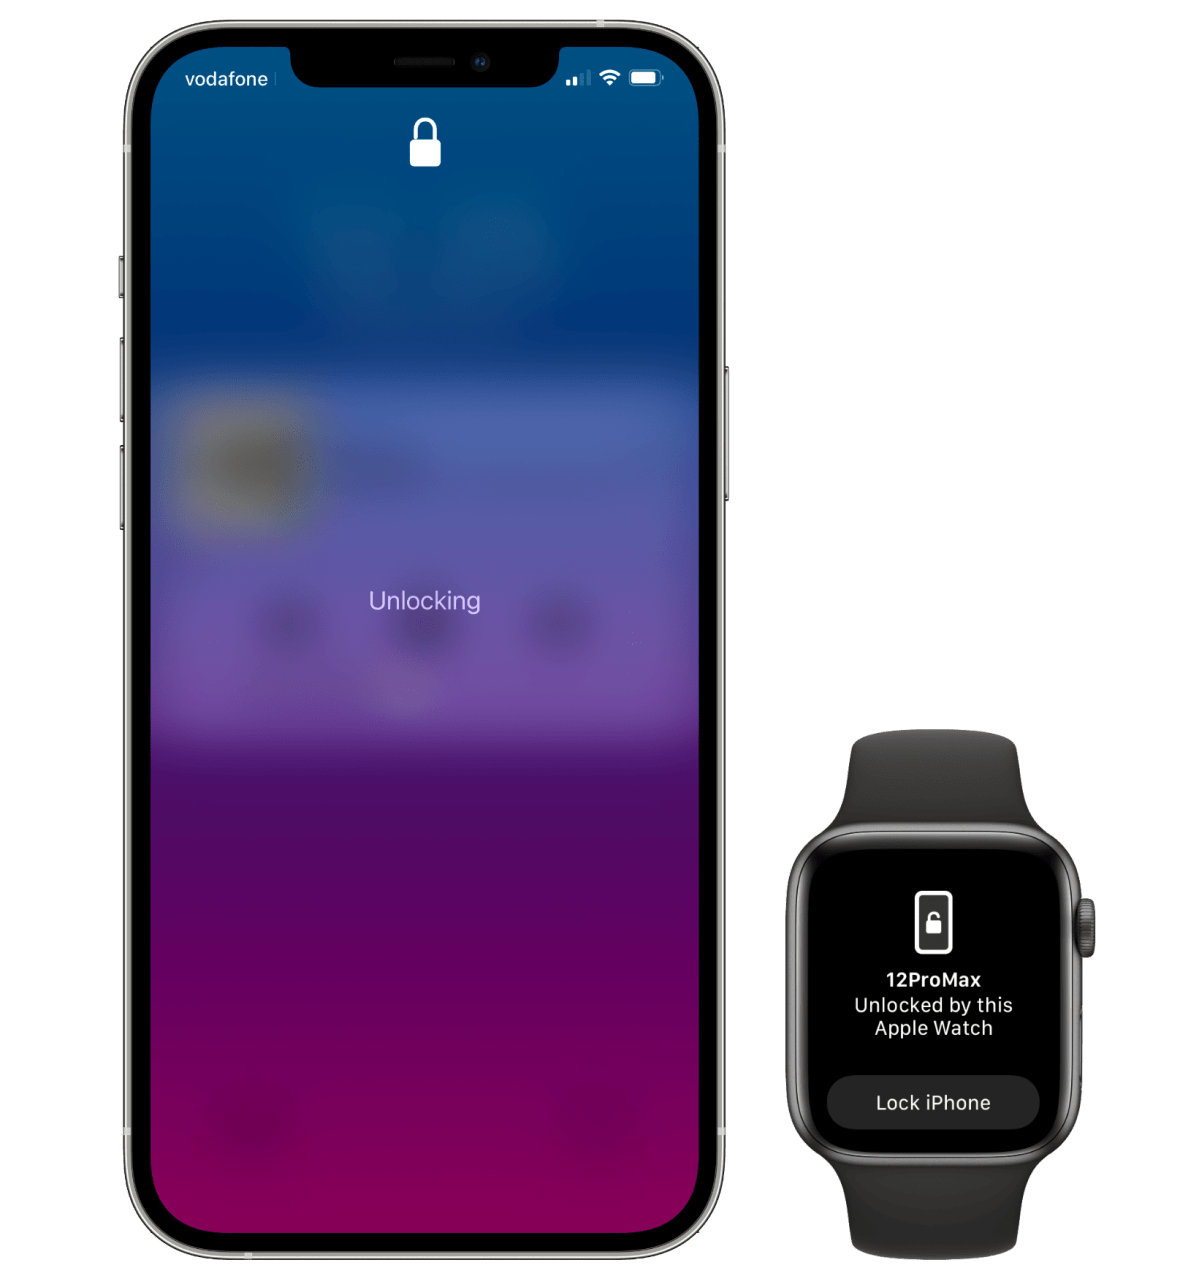 Unlocking Face ID via the Apple Watch. You only see the message on Apple Watch if you raise your wrist after a successful authentication.